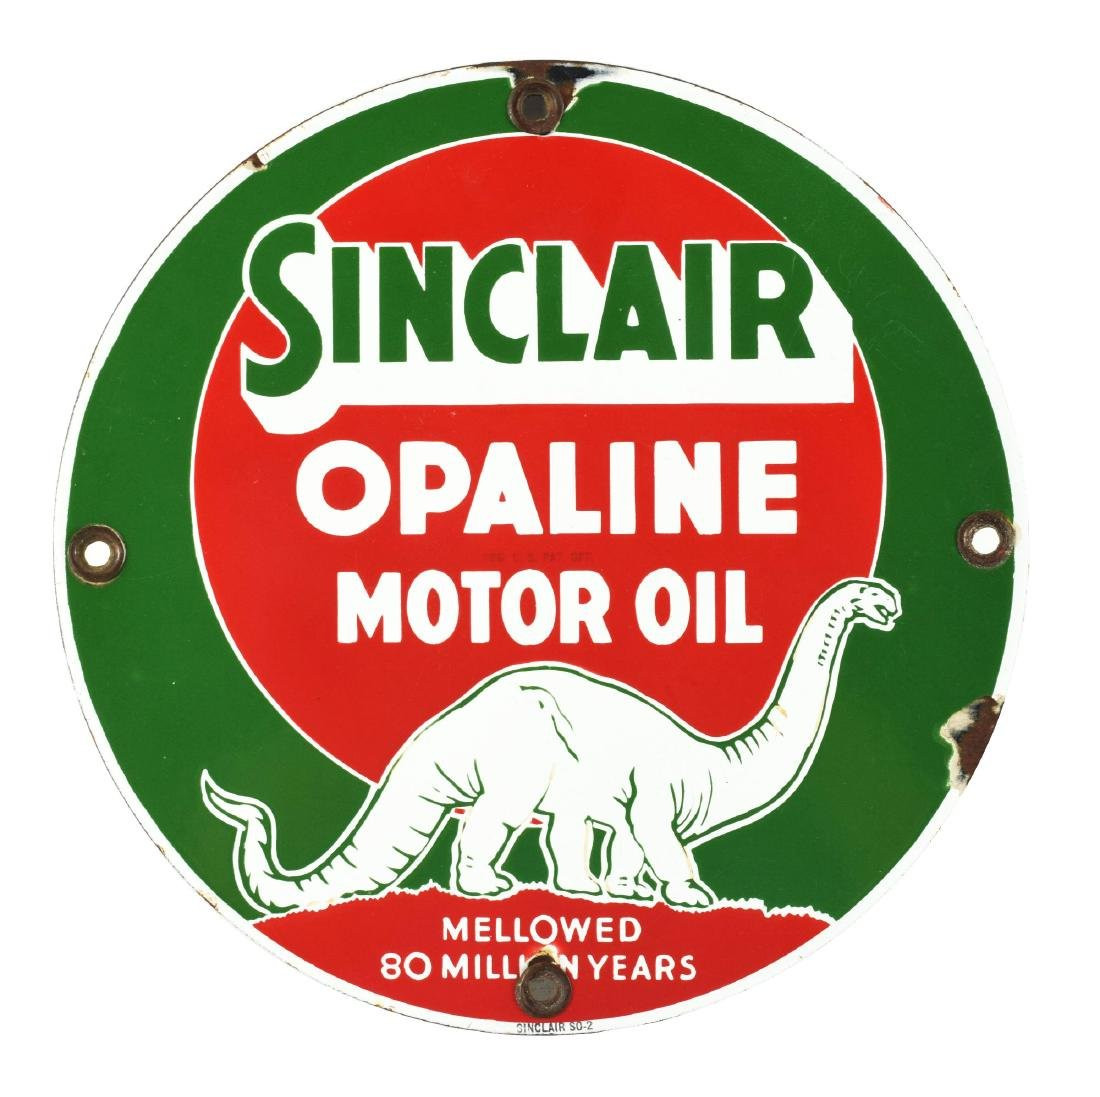 Sinclair Opaline Motor Oil Porcelain Sign with Dinosaur